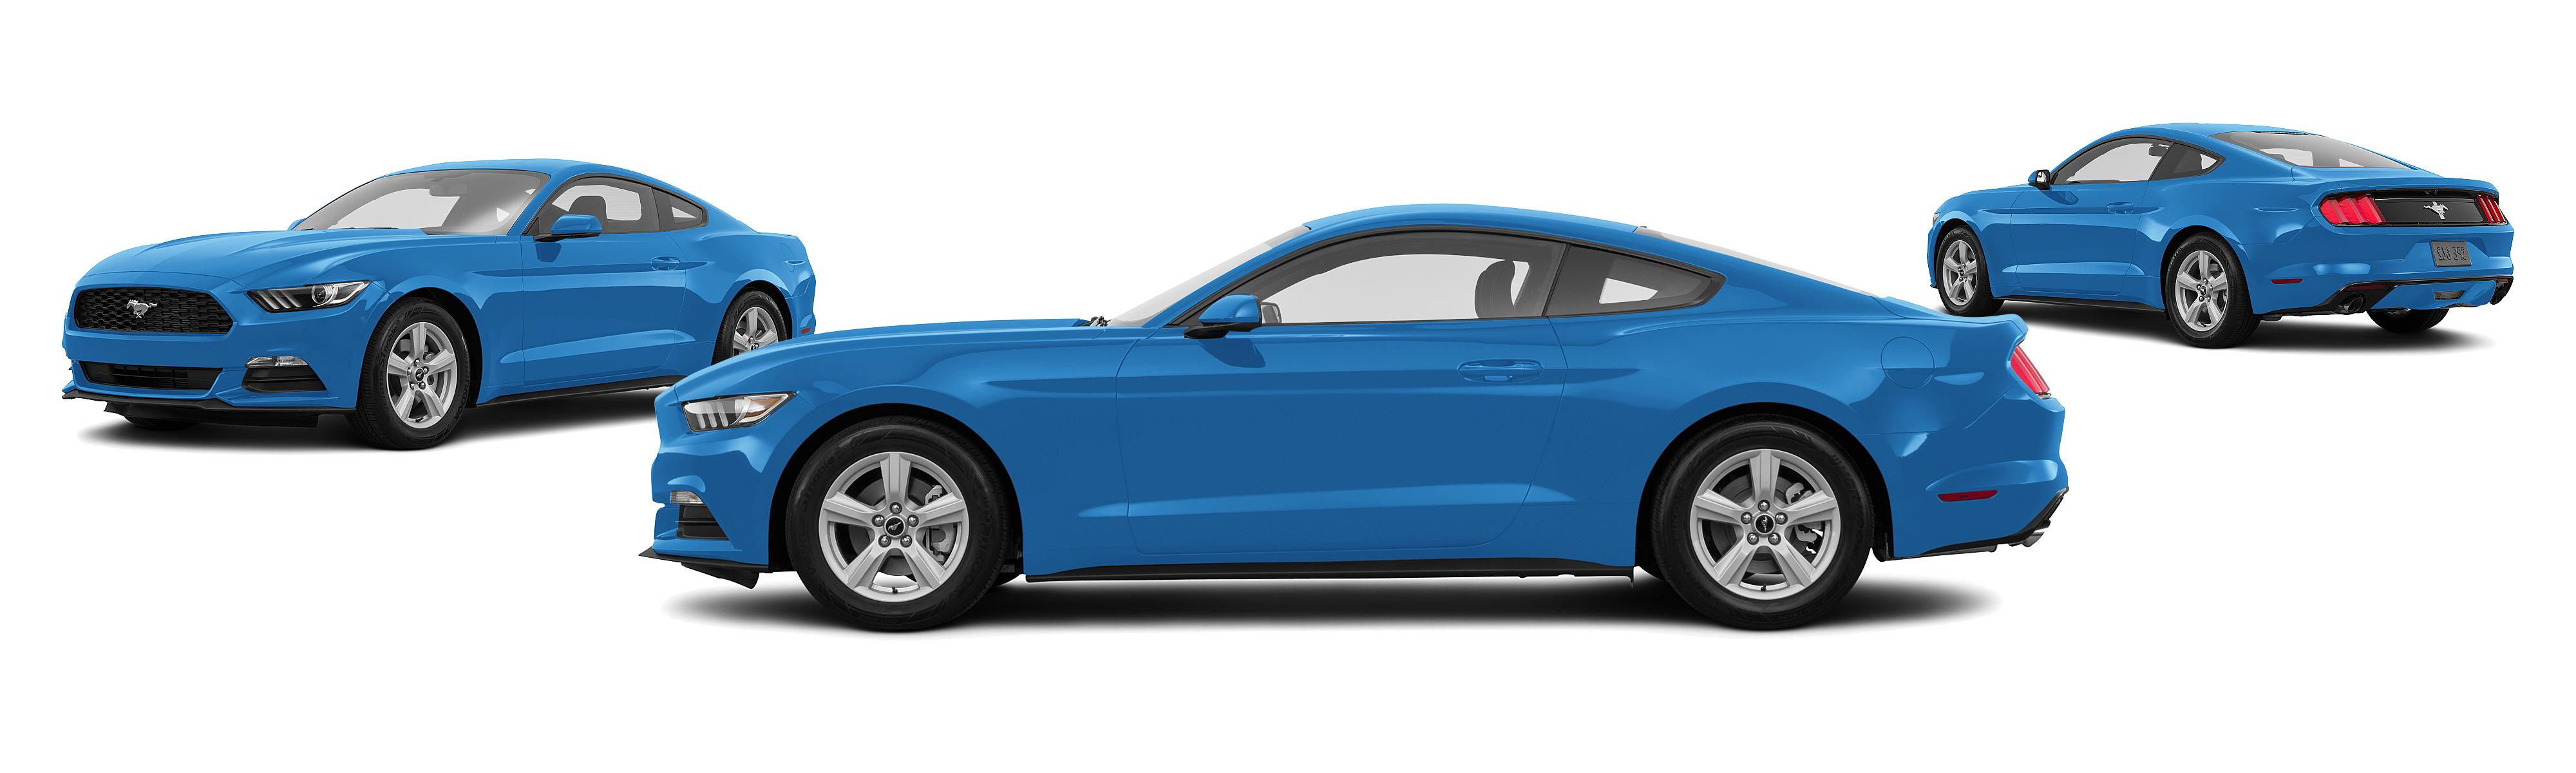 2017 Ford Mustang Ecoboost 2dr Fastback Research Groovecar